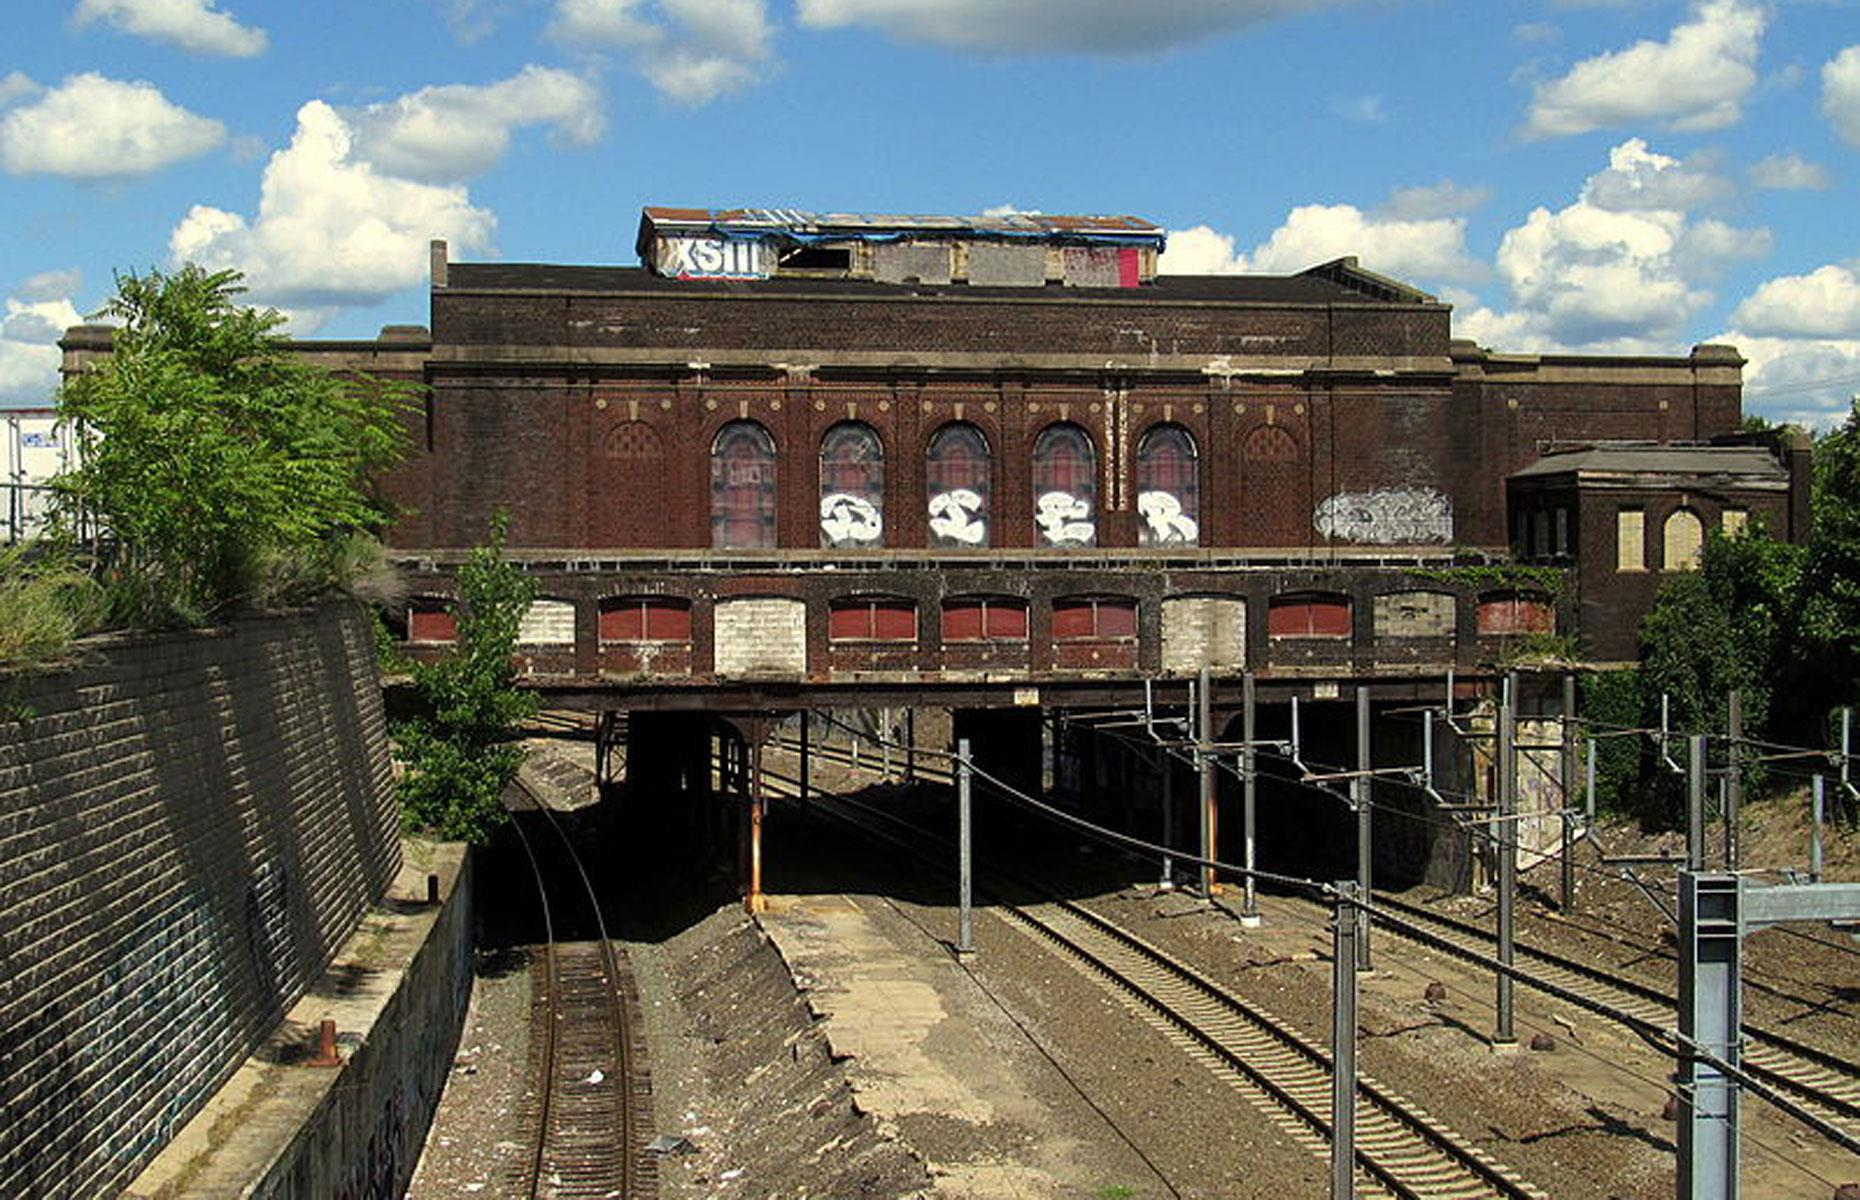 Slide 79 of 101: Though redevelopment plans have been floated over the years, the elegant building currently remains abandoned. Plans to open a brand new station nearby are well underway.